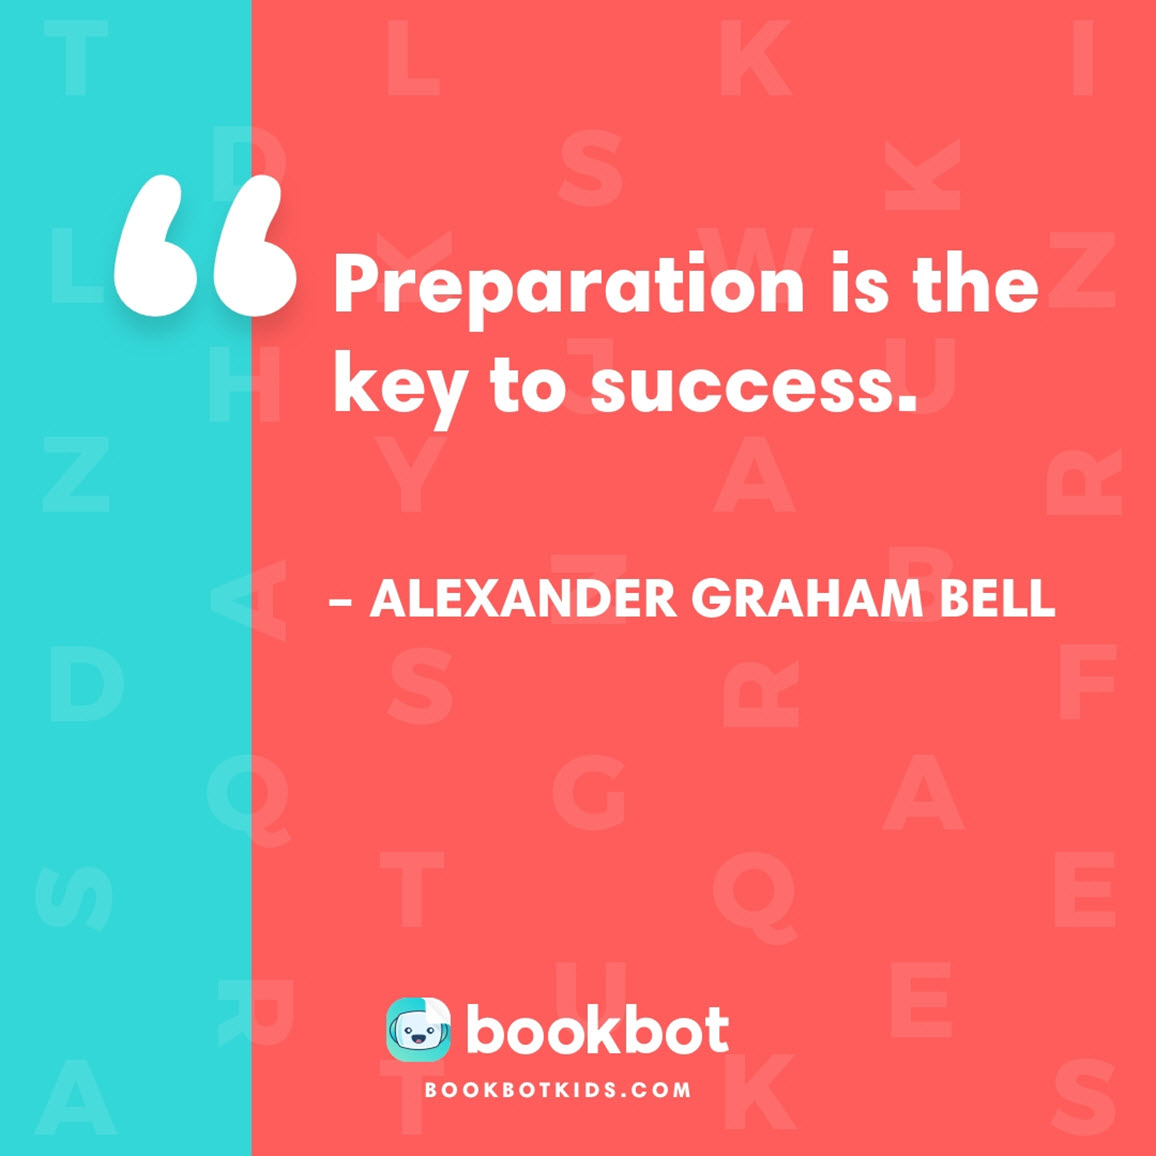 Preparation is the key to success. – Alexander Graham Bell